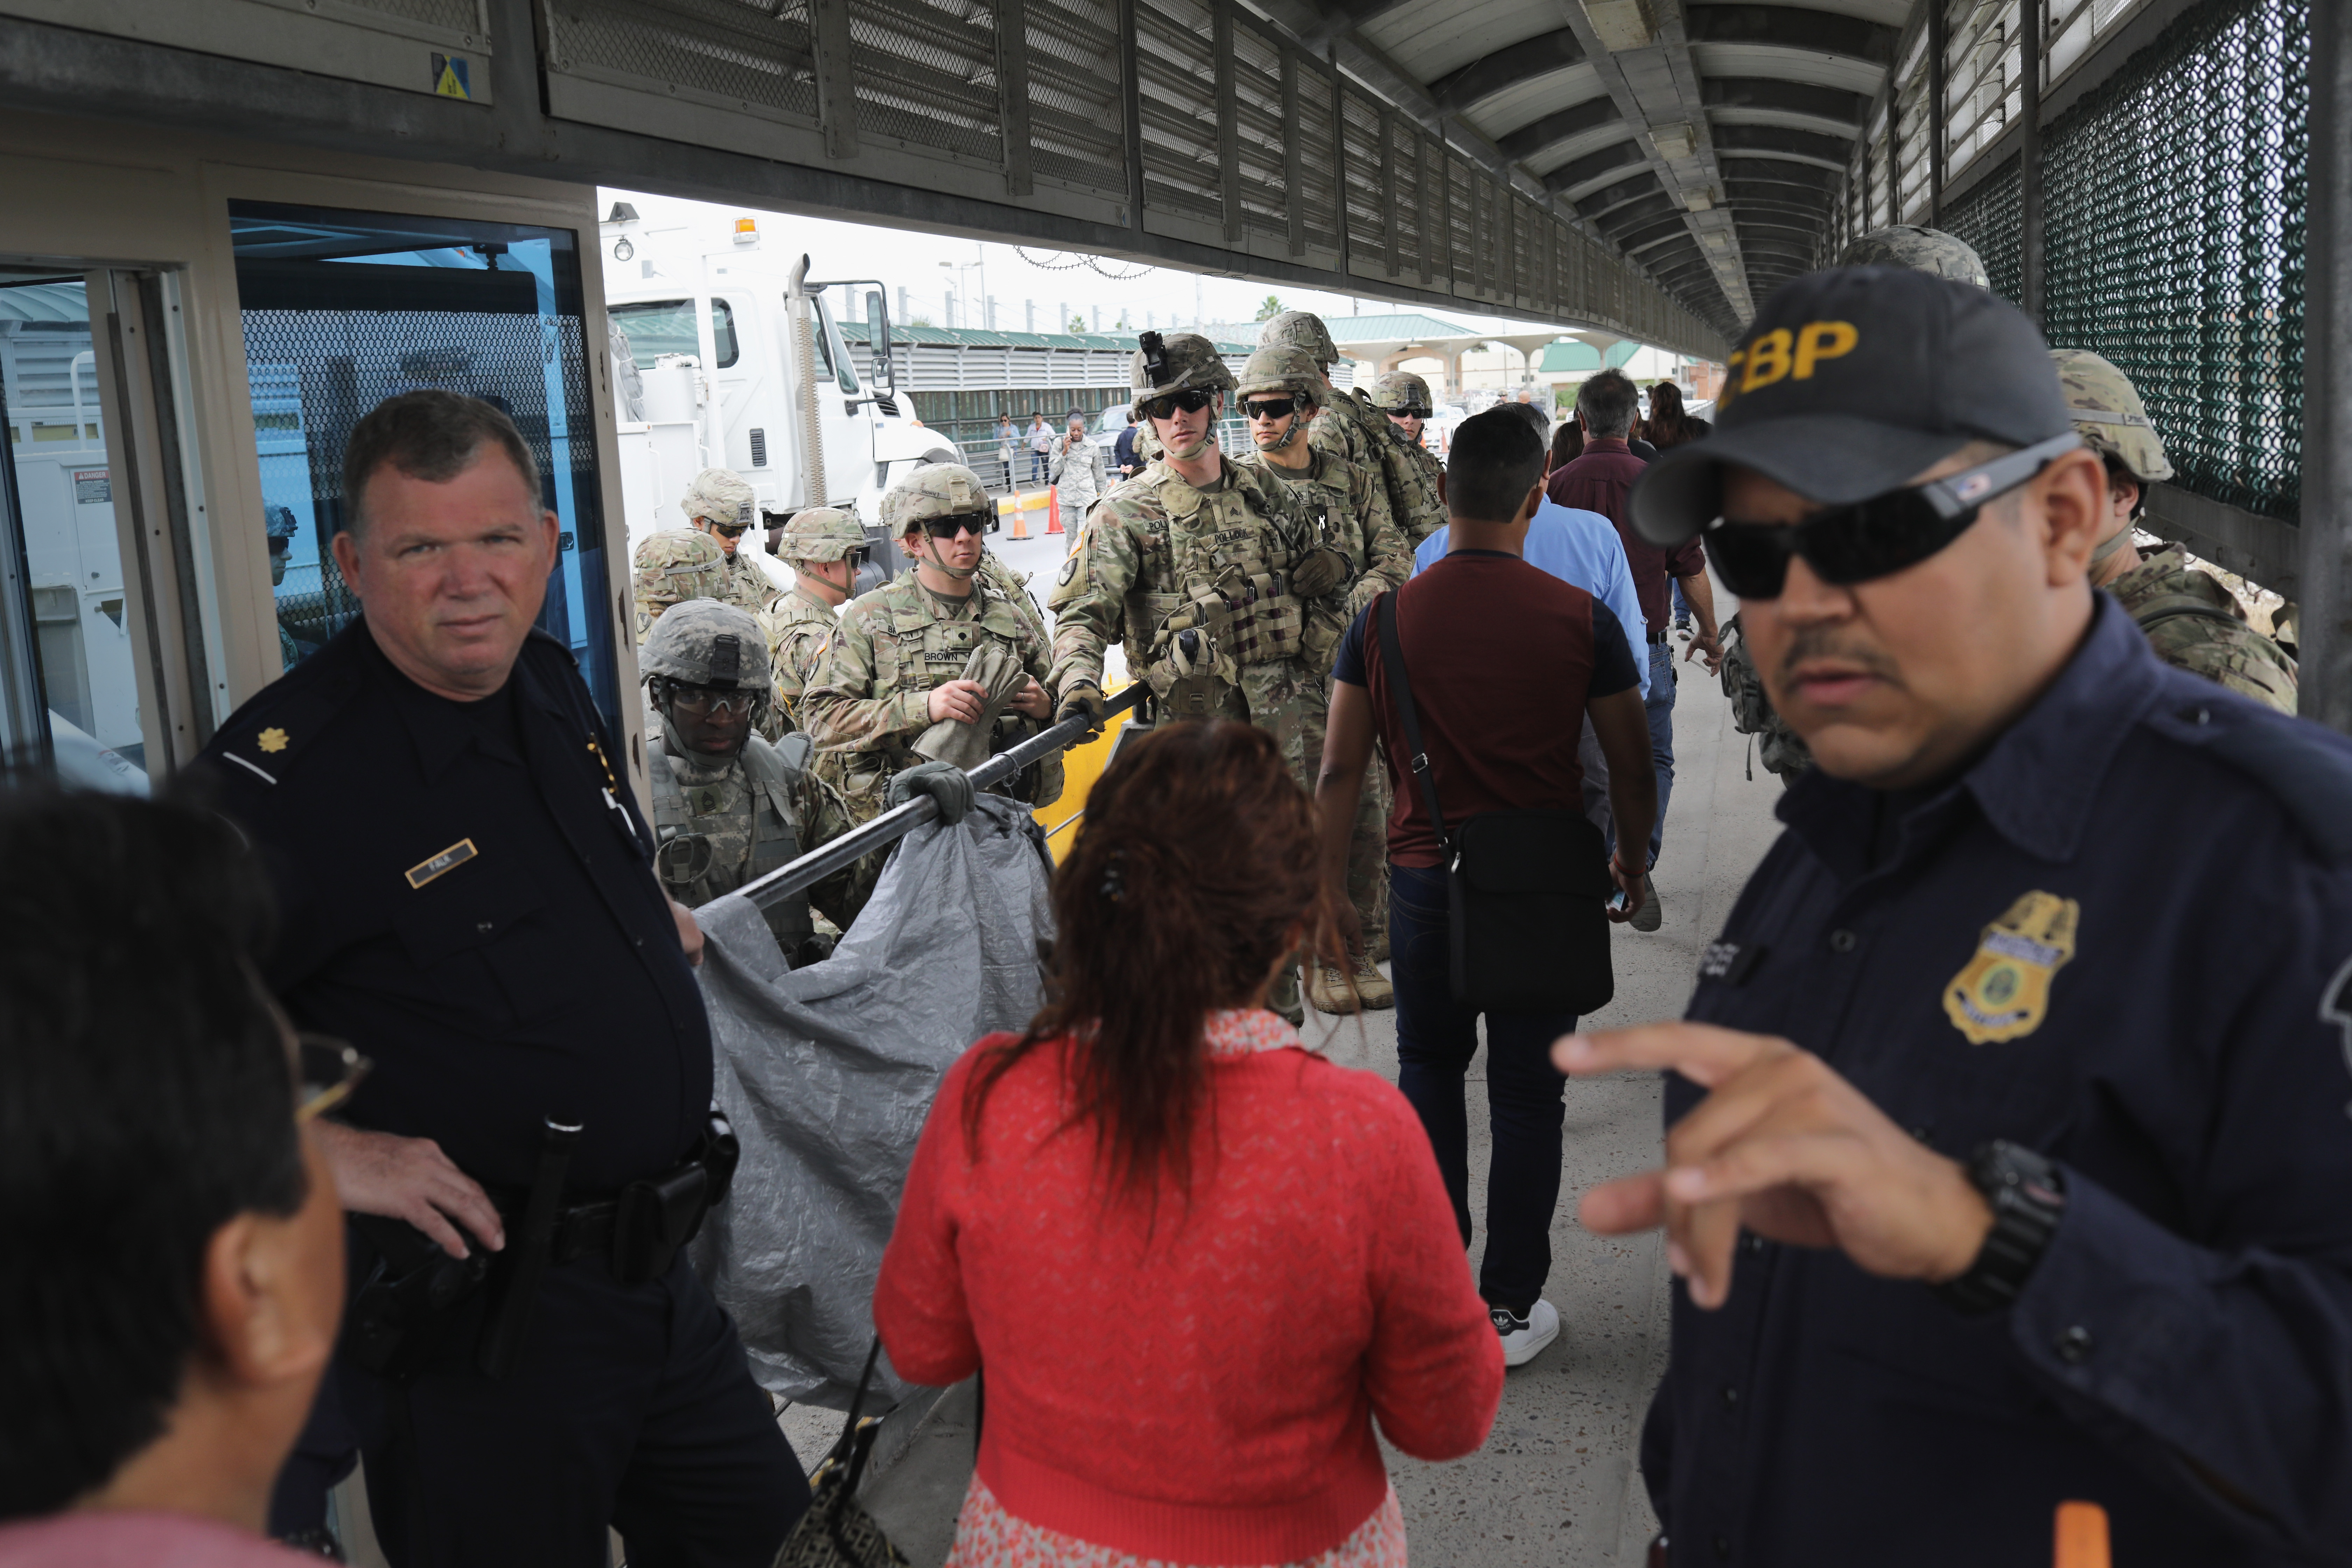 U.S. Customs and Border Protection officers and U.S. Army troops allow people to pass over the international bridge with Mexico to an immigration checkpoint on November 2, 2018 in Hidalgo, Texas. (Photo by John Moore/Getty Images)